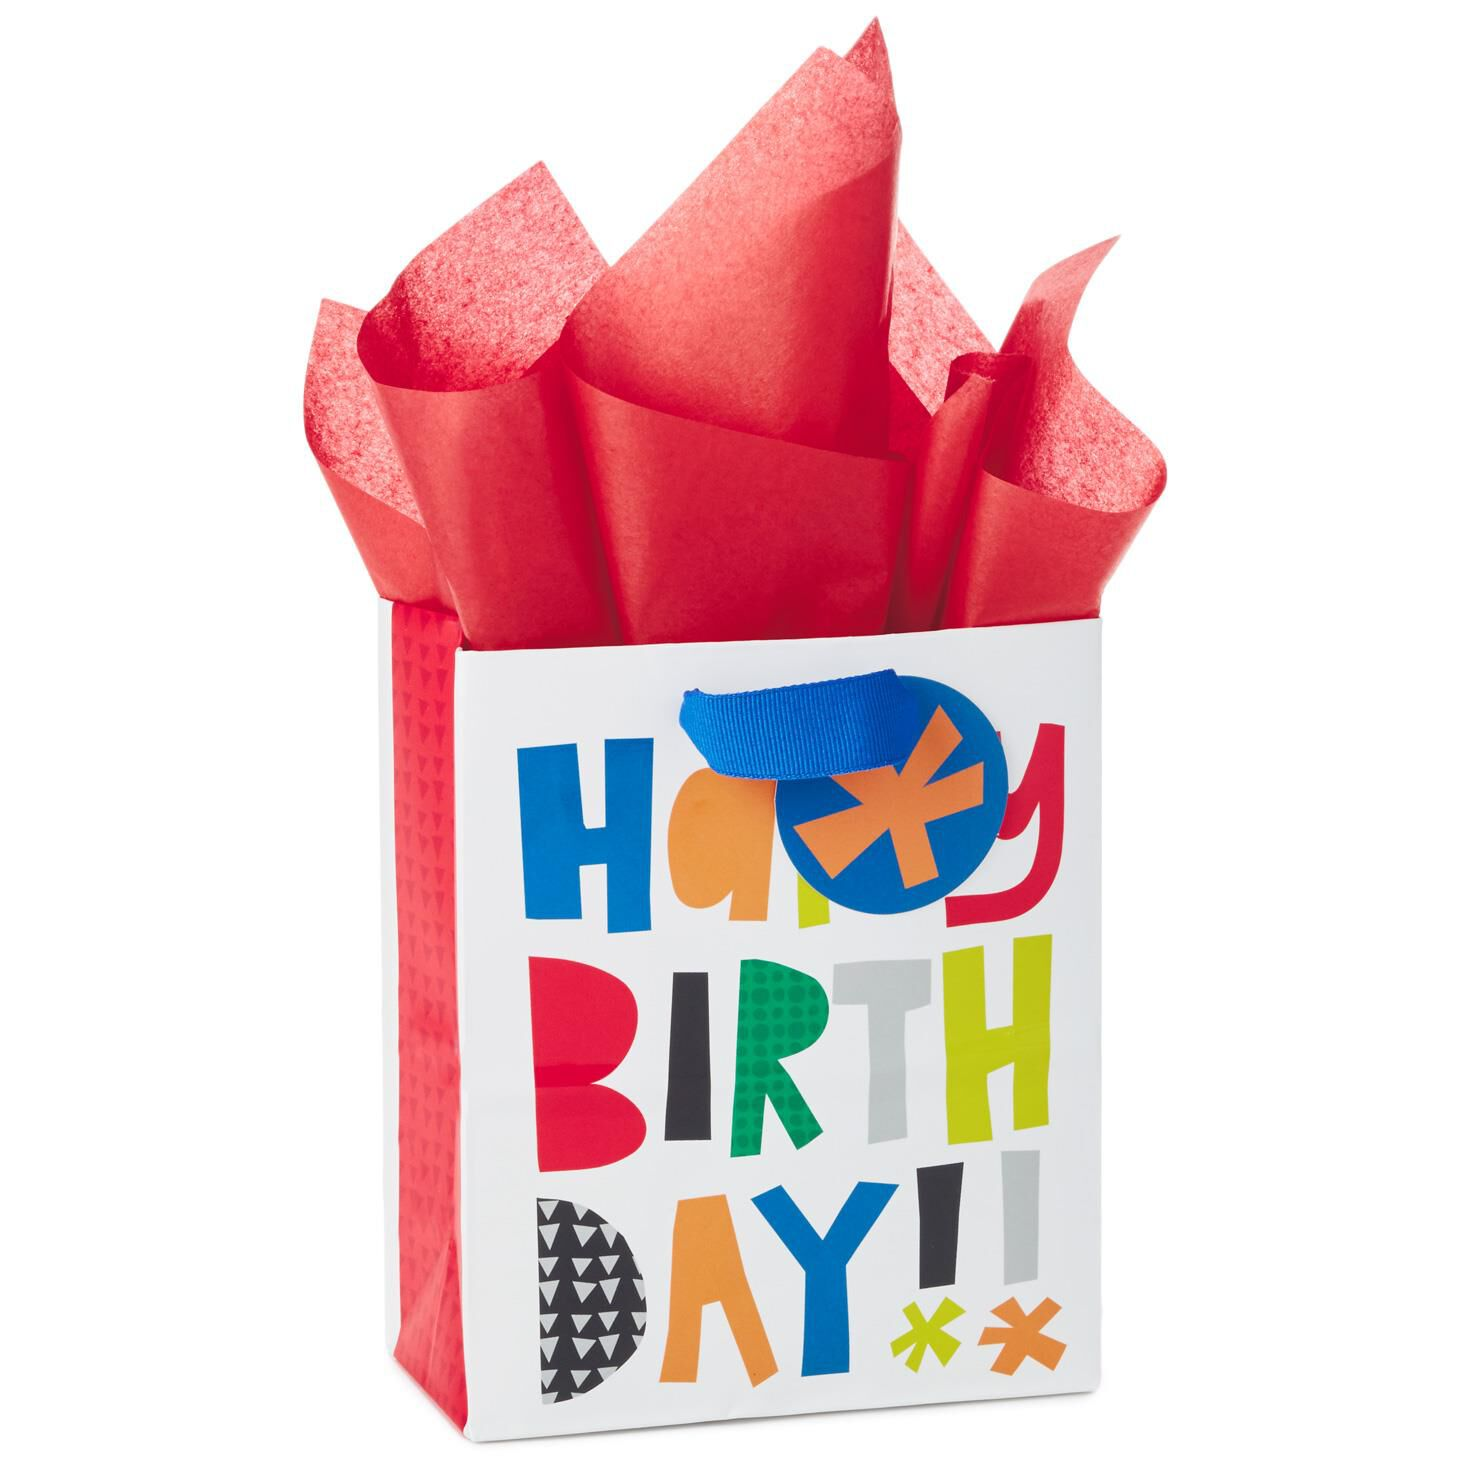 Happy Birthday Block Letters Small Gift Bag With Tag And Tissue 65